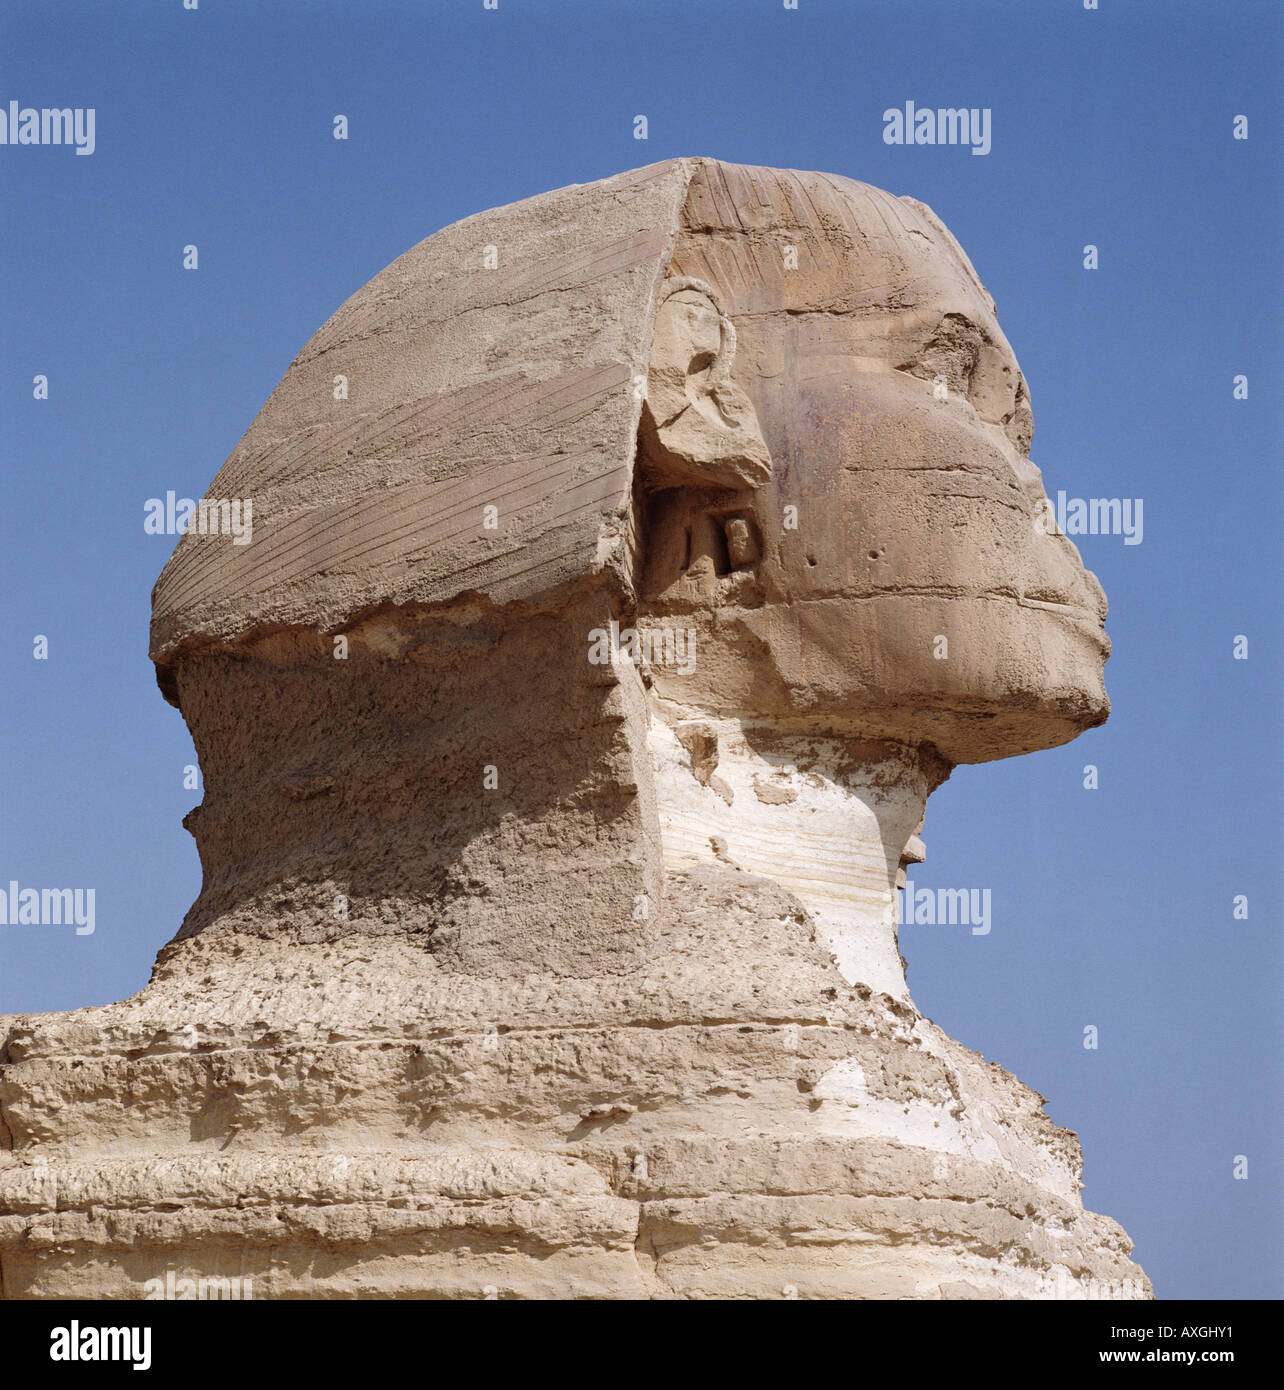 The head of the Great Sphinx Giza Cairo Egypt North Africa - Stock Image